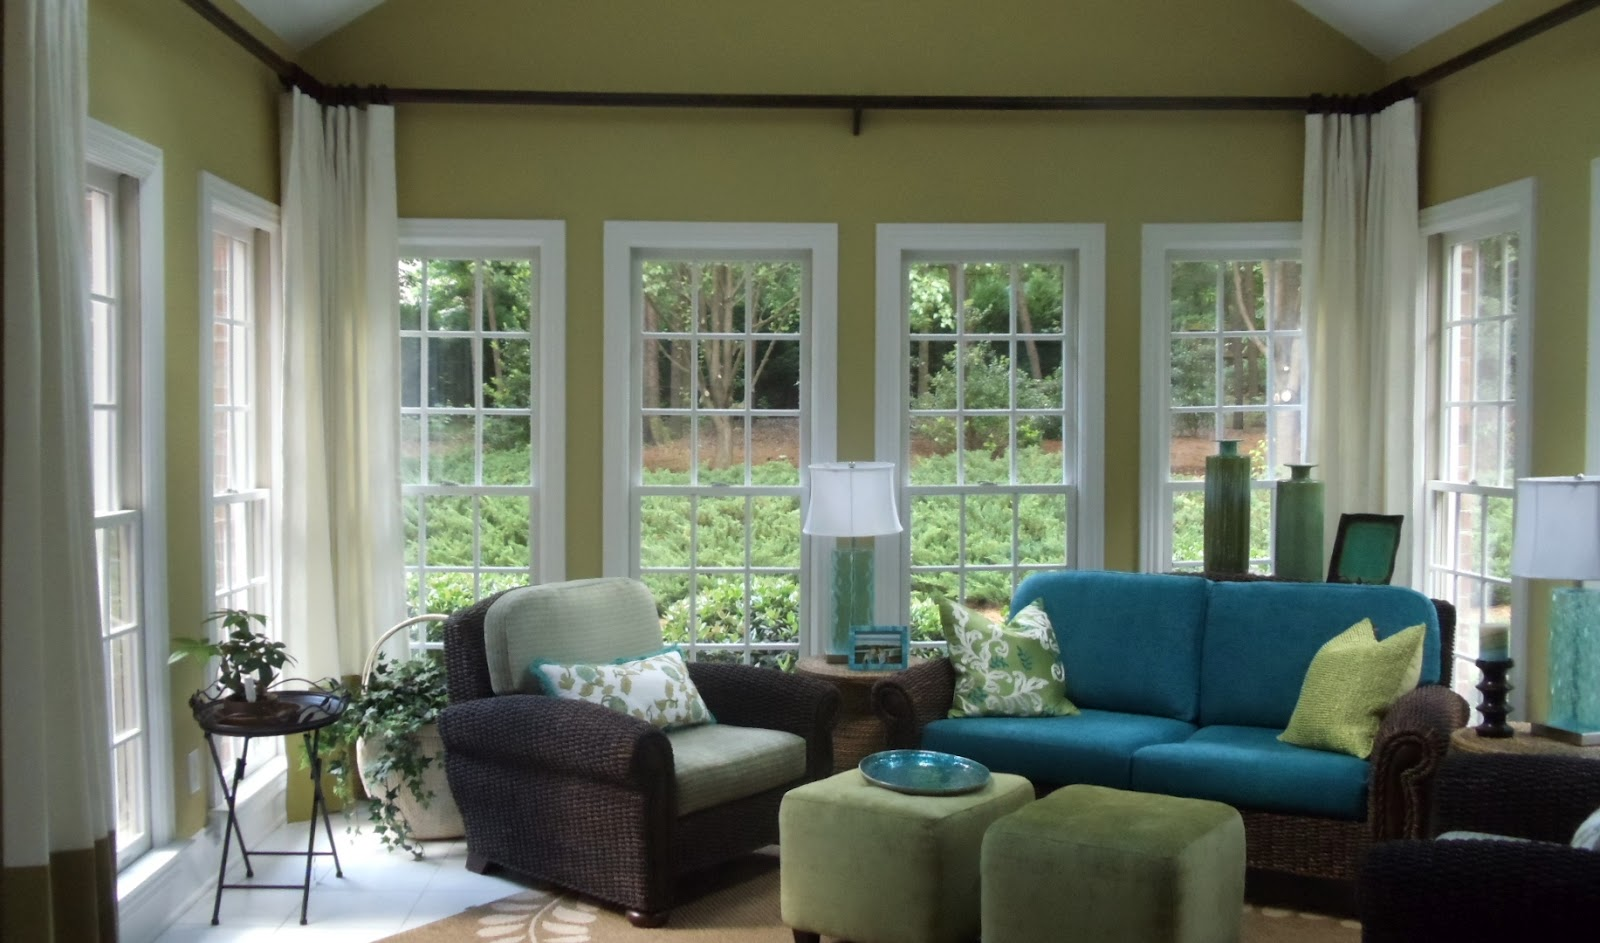 Impressive sun room concept ideas for Interior windows